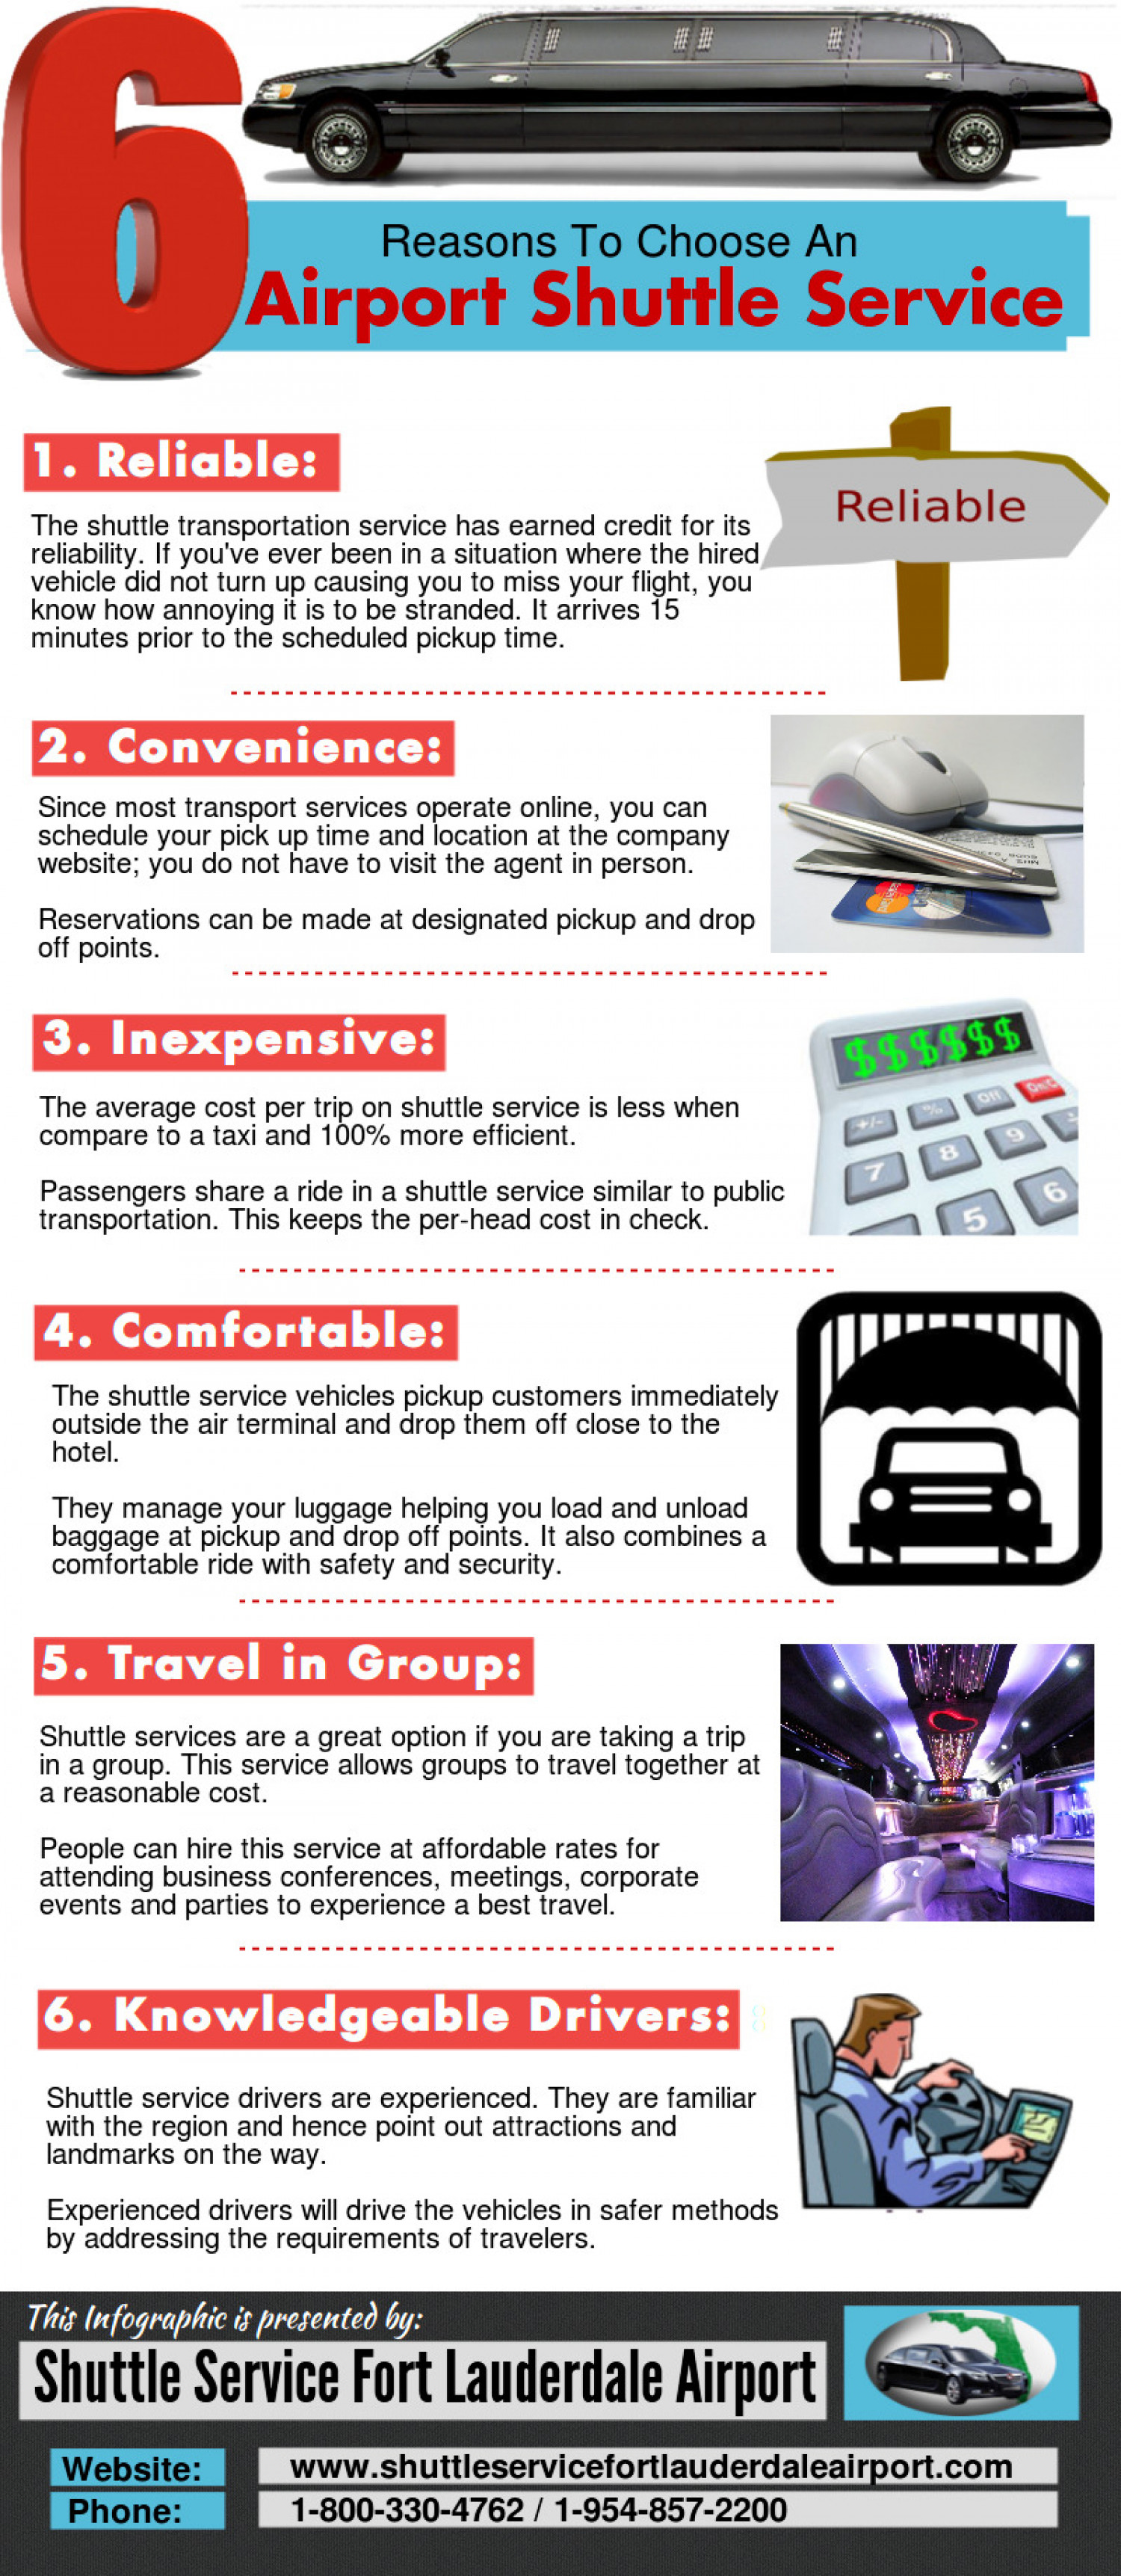 6 Reasons To Choose An Airport Shuttle Service Infographic